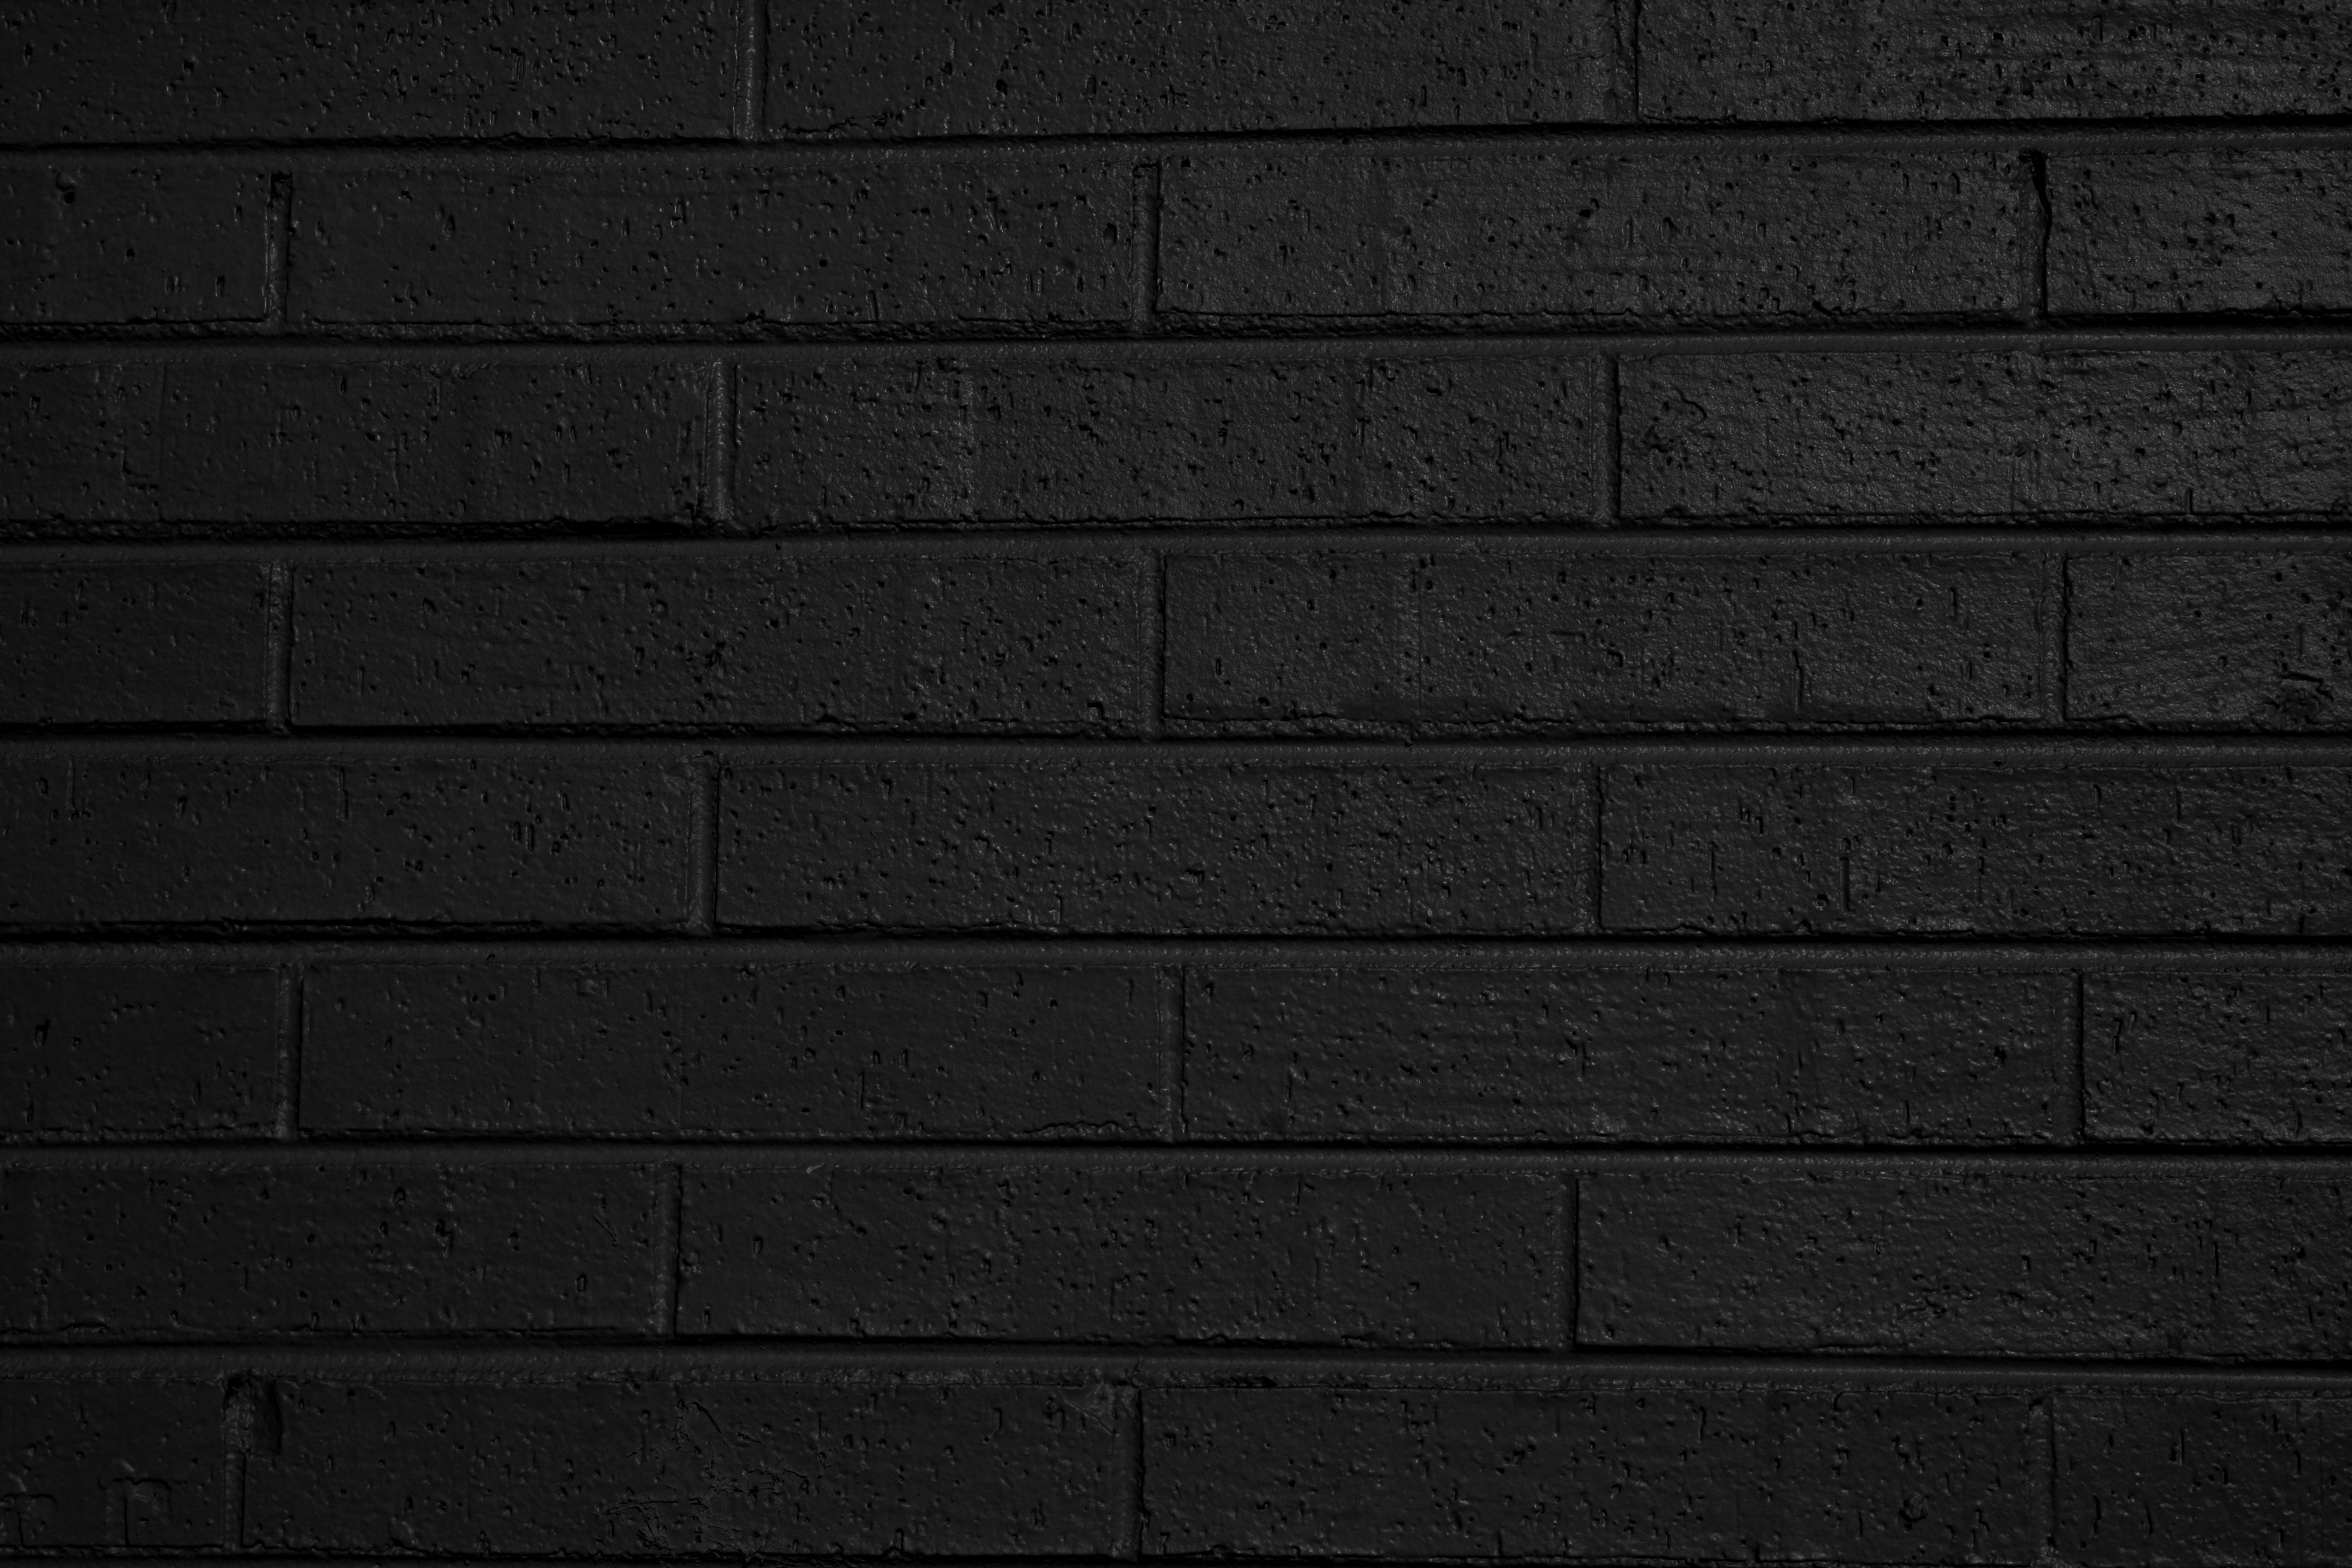 Black Painted Brick Wall Texture